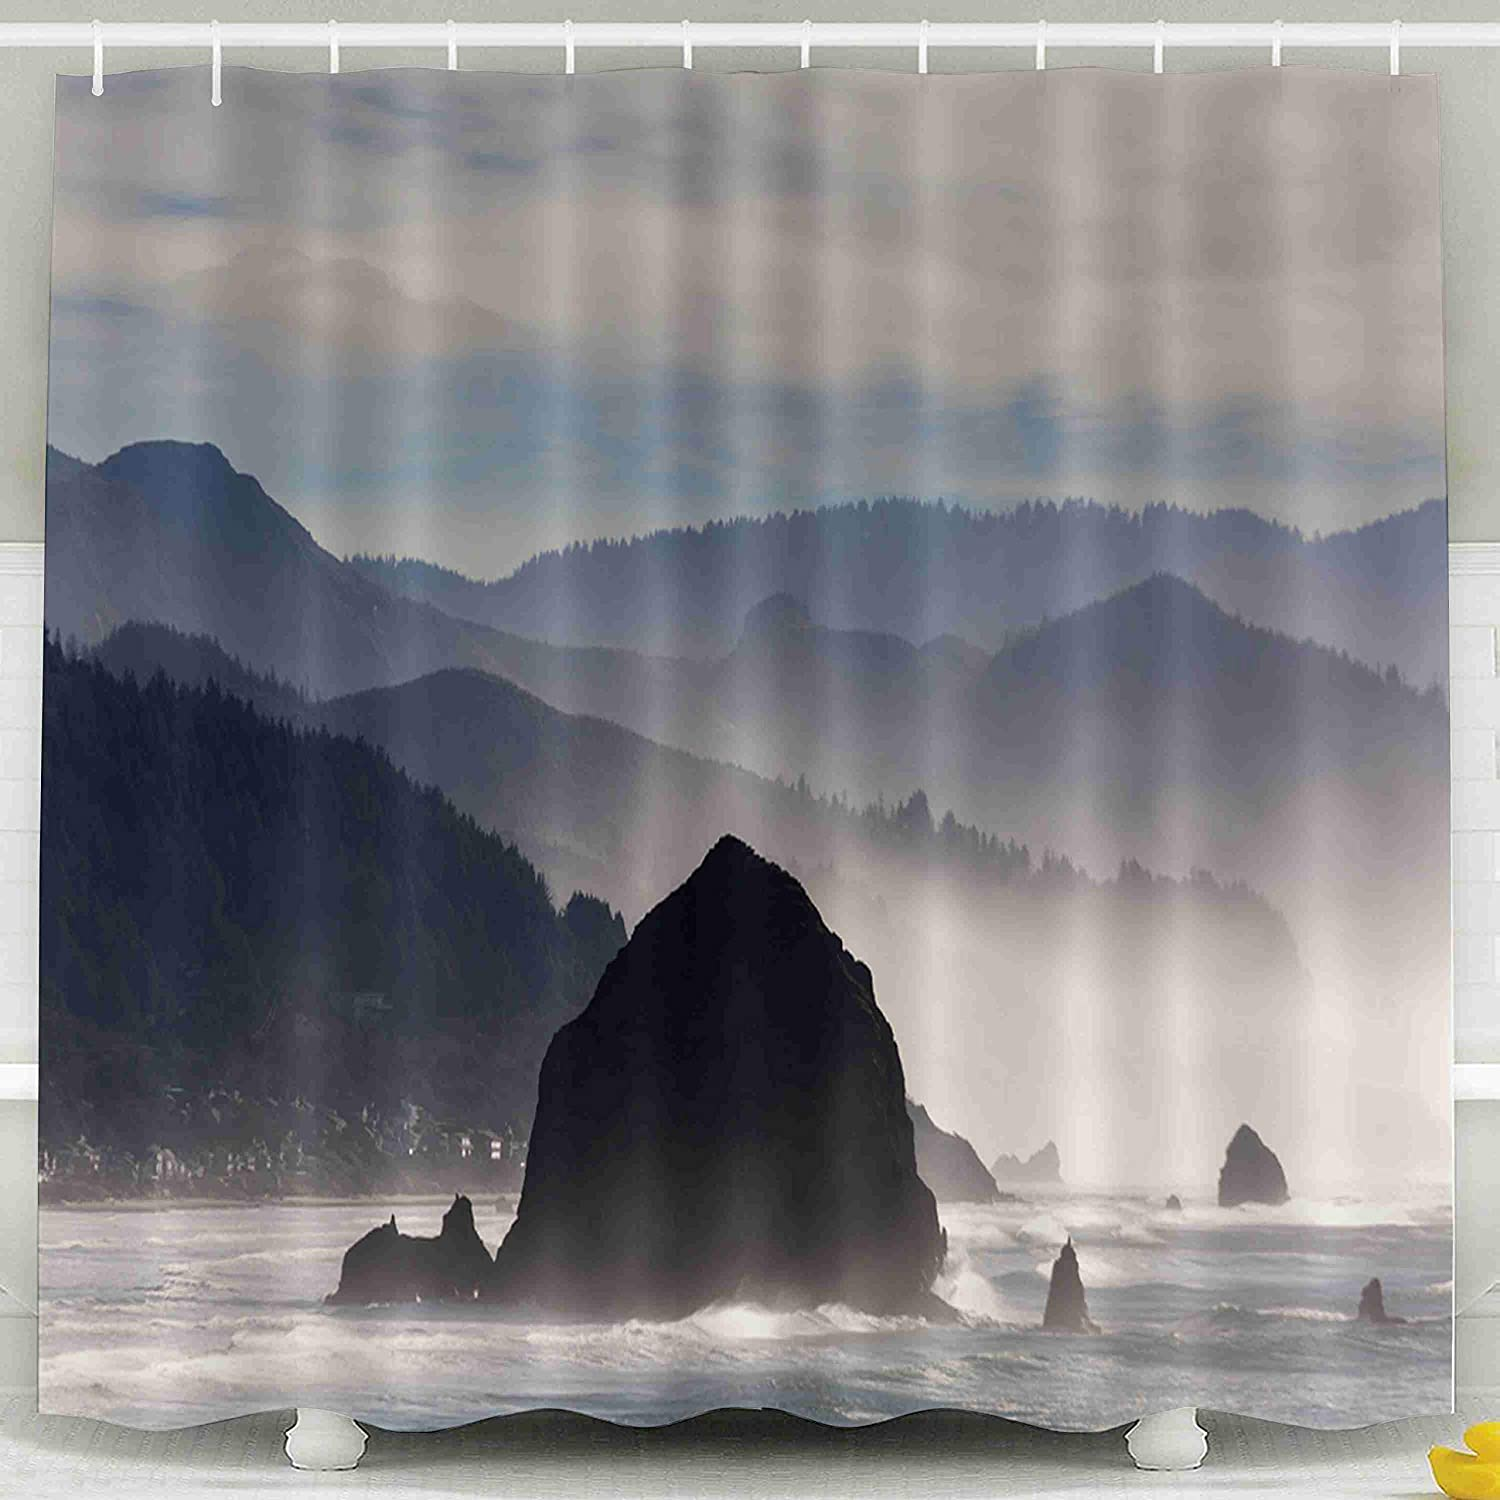 ROOLAYS 78 Shower Curtain,Shower Curtain, Rock in Beach Along Coast The Pacific Ocean Cannon Oregon Waterproof Decorative for Home Décor 78x72 Inch Bathroom Fabric Shower Curtains,Green Ivory